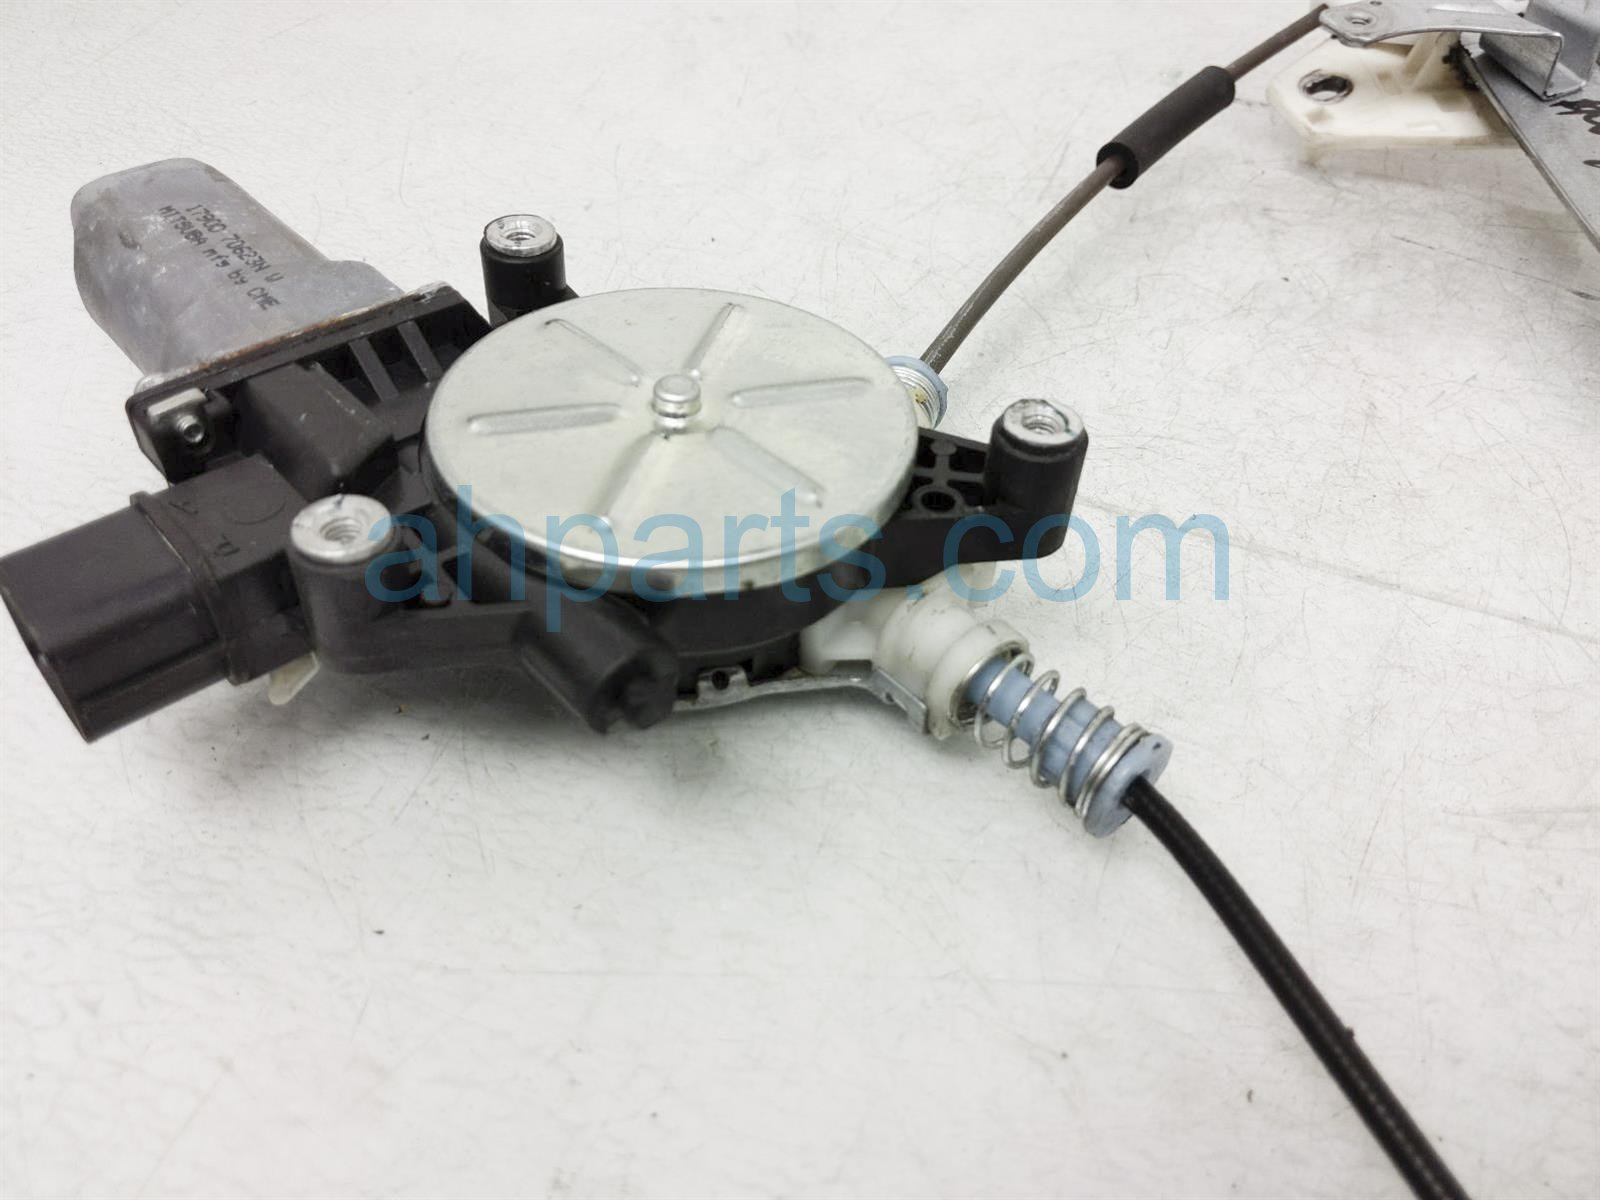 2007 Honda Accord Front Passenger Window Regulator & Motor 72210 SDA A02 Replacement